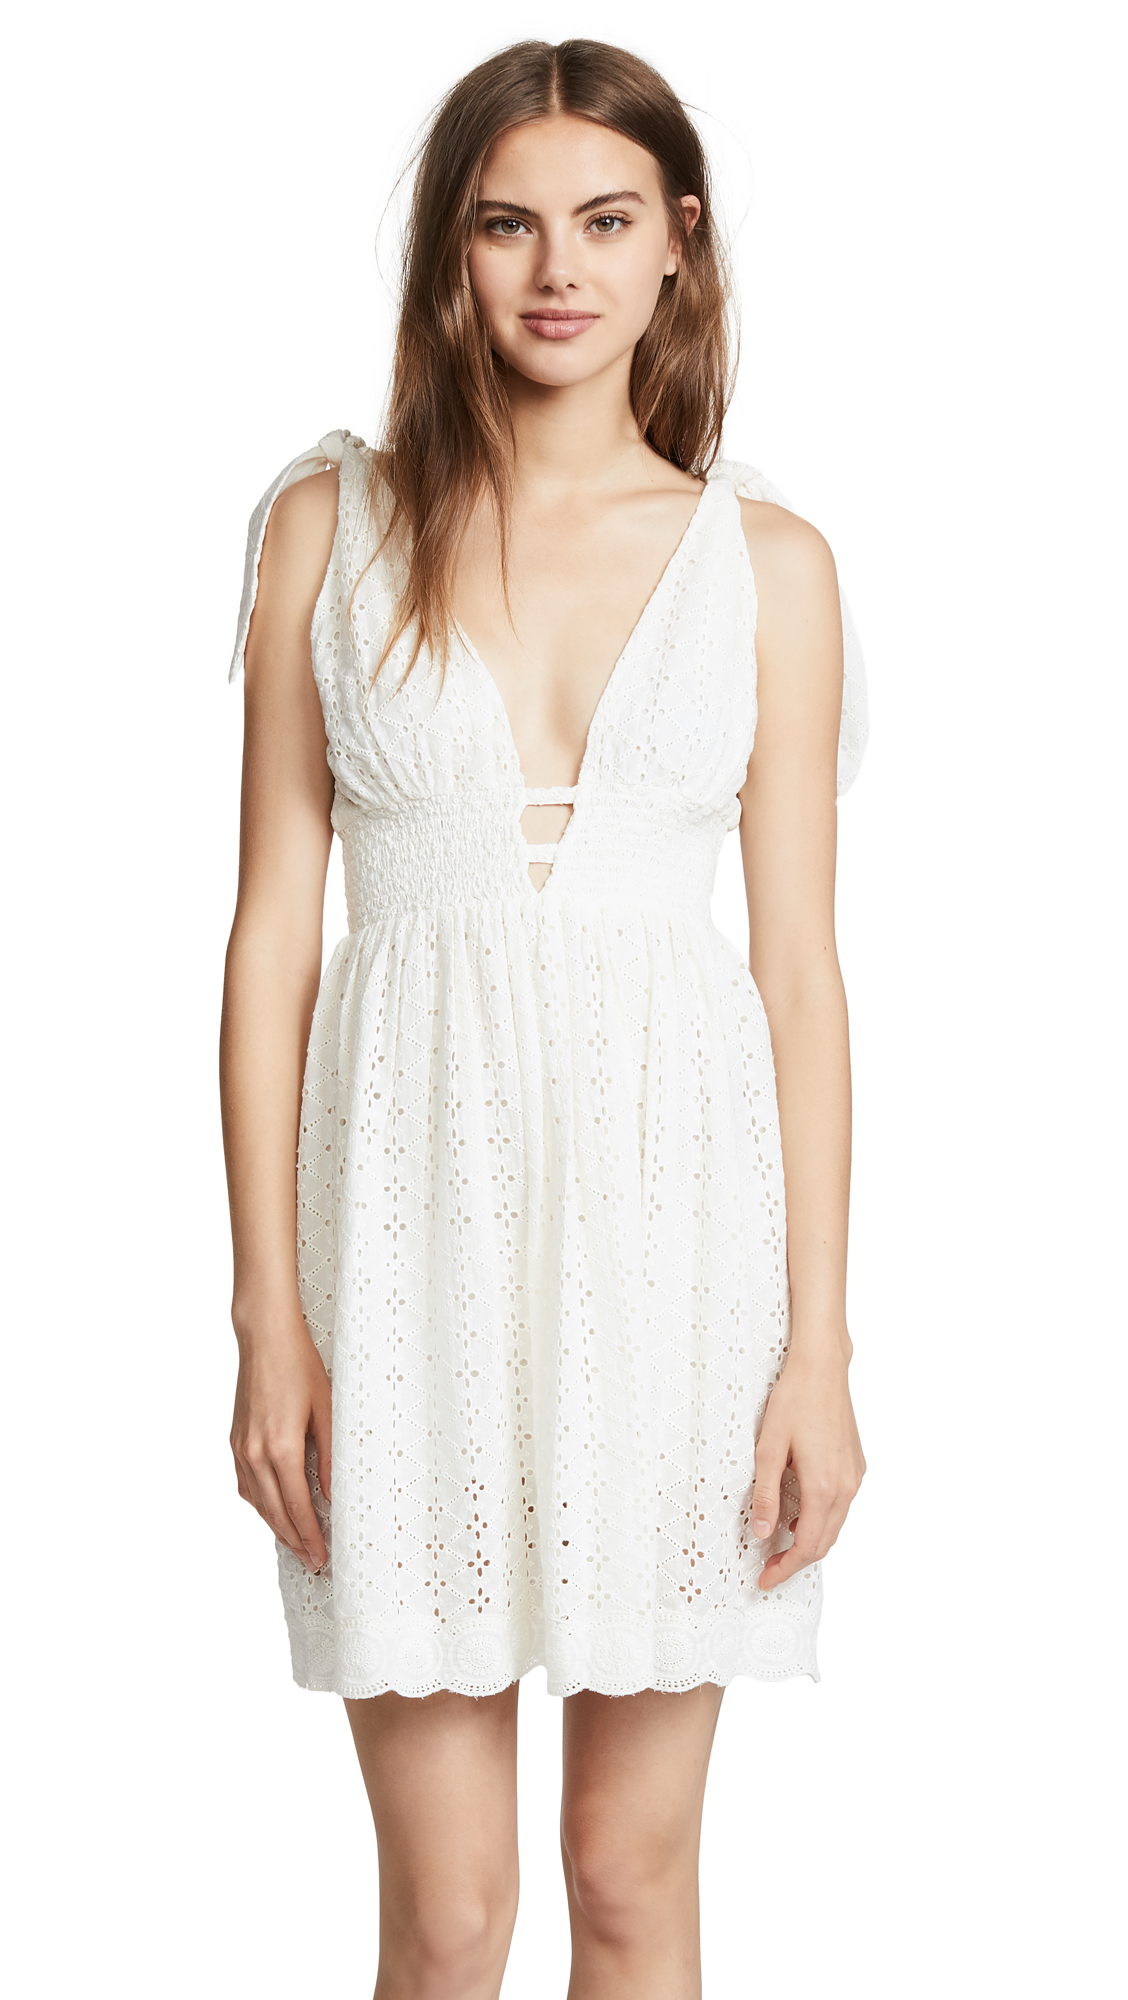 VALENCIA & VINE LUCY DRESS